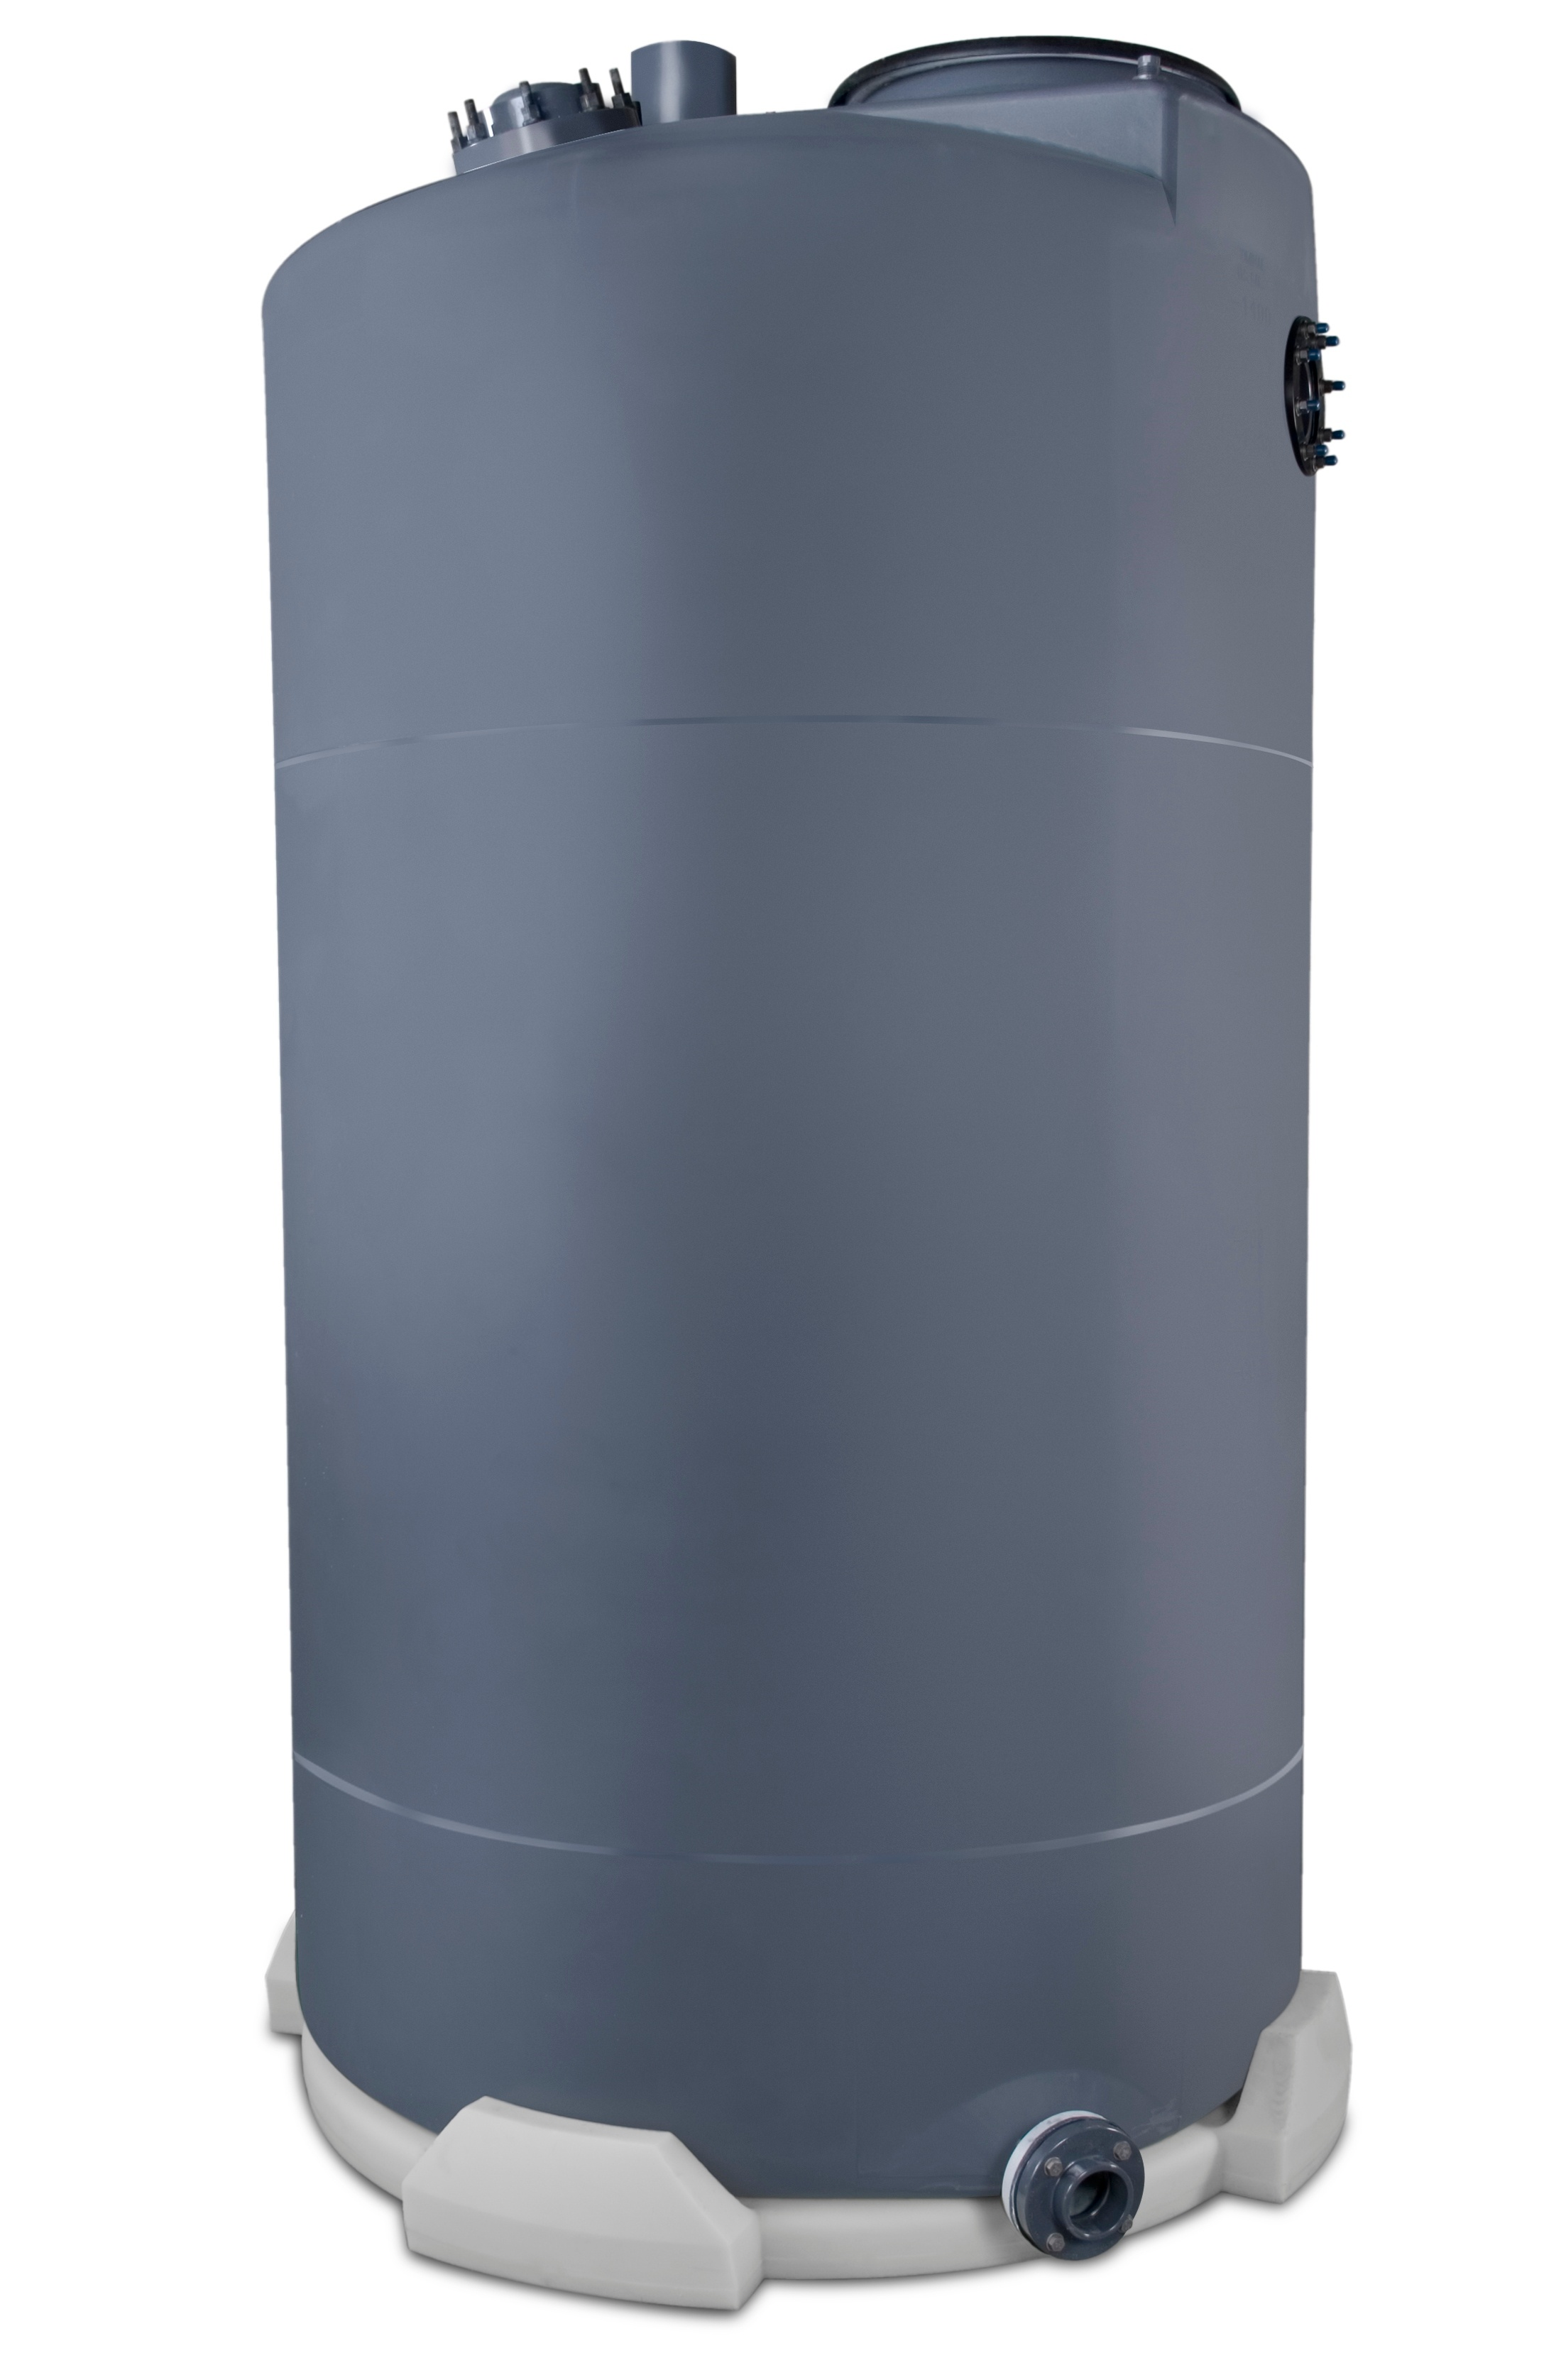 1400g Tank with IMFO Fitting